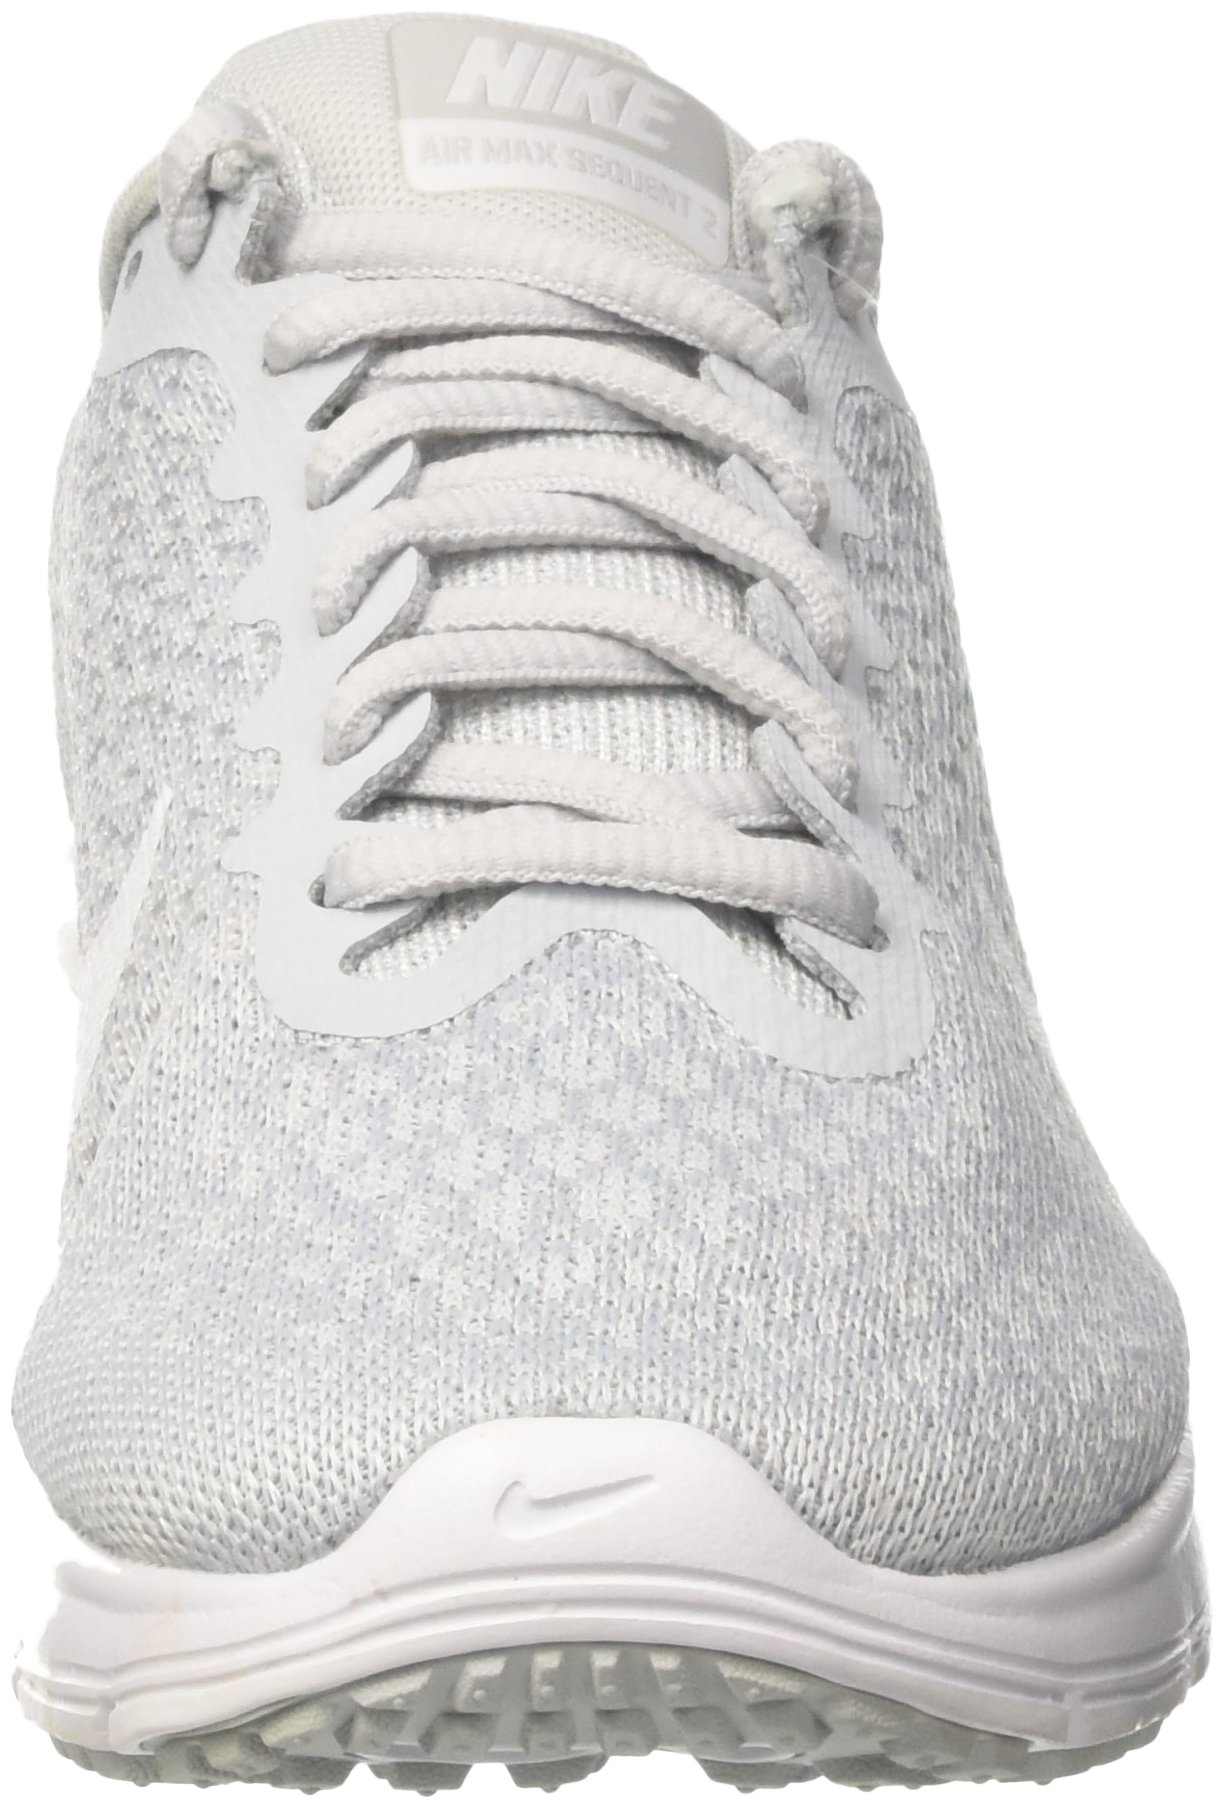 NIKE Womens Air max Sequent 2 Low Top Lace Up Running Sneaker, Silver, Size 10.0 by NIKE (Image #4)